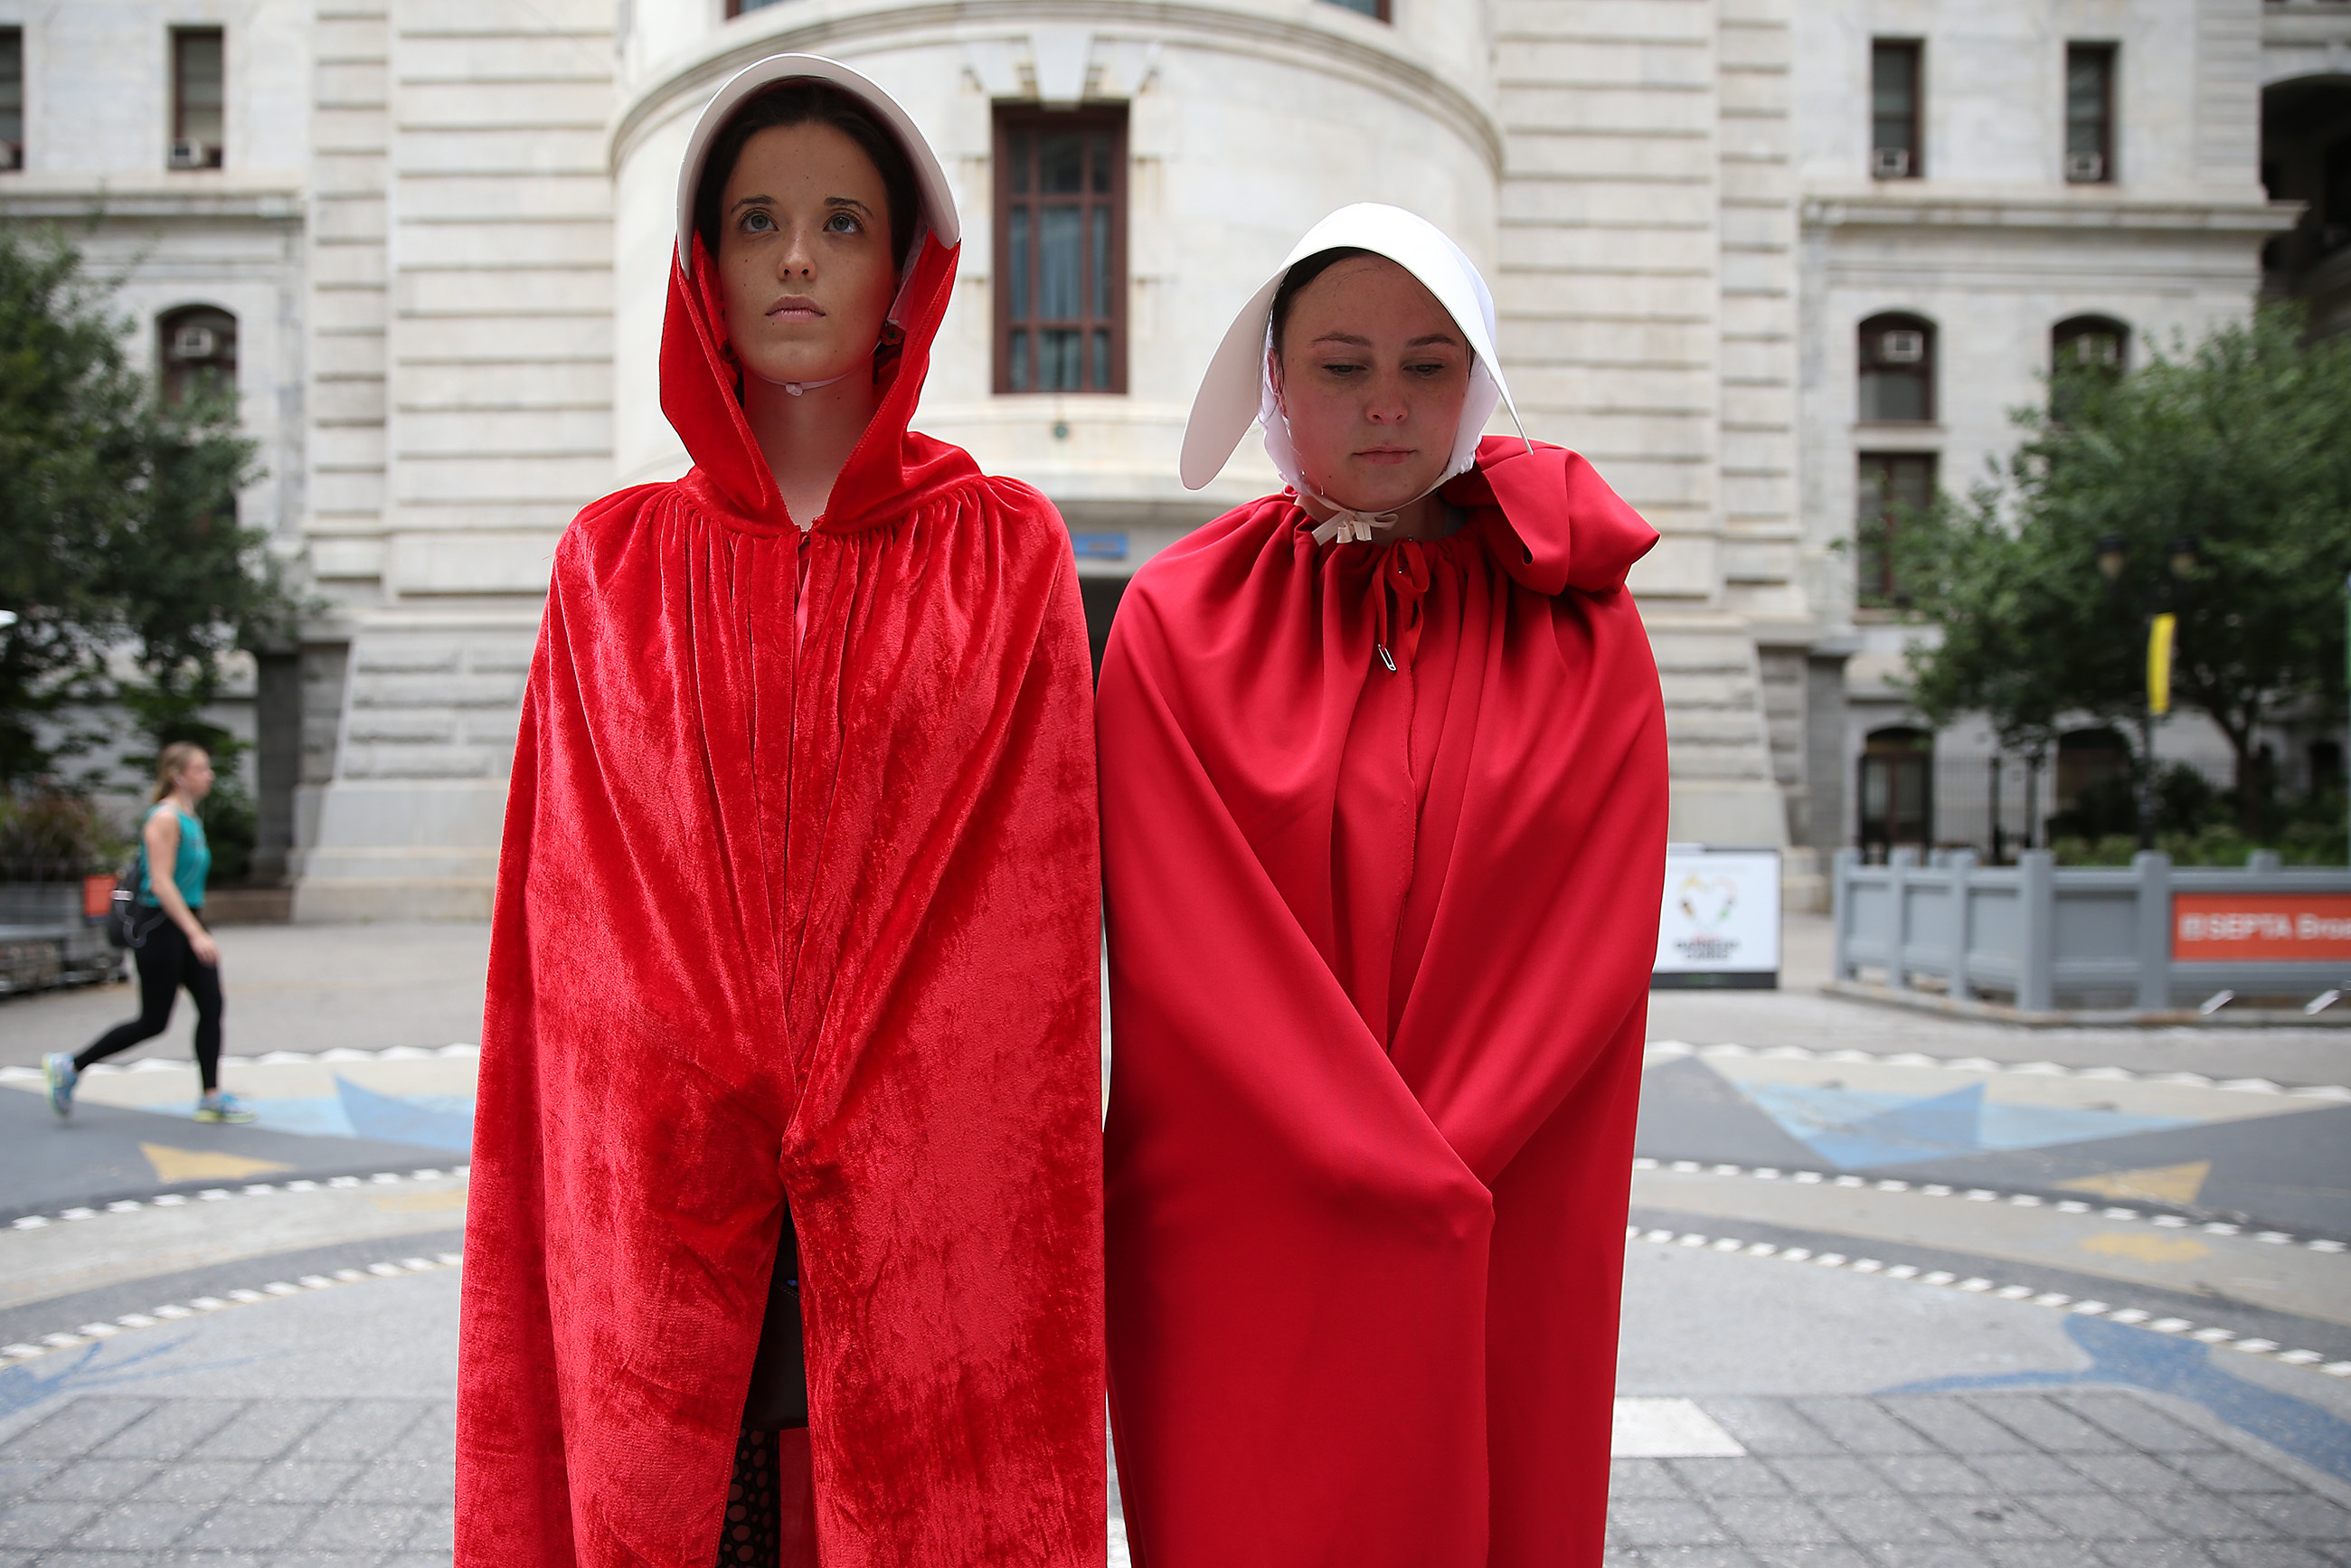 Protesters Mary Tierney, left, and Liz McHale, right, wait at City Hall dressed in costumes from the Handmaid's Tale as Vice President Mike Pence makes a stop at the Union League in Philadelphia, PA on July 23, 2018.